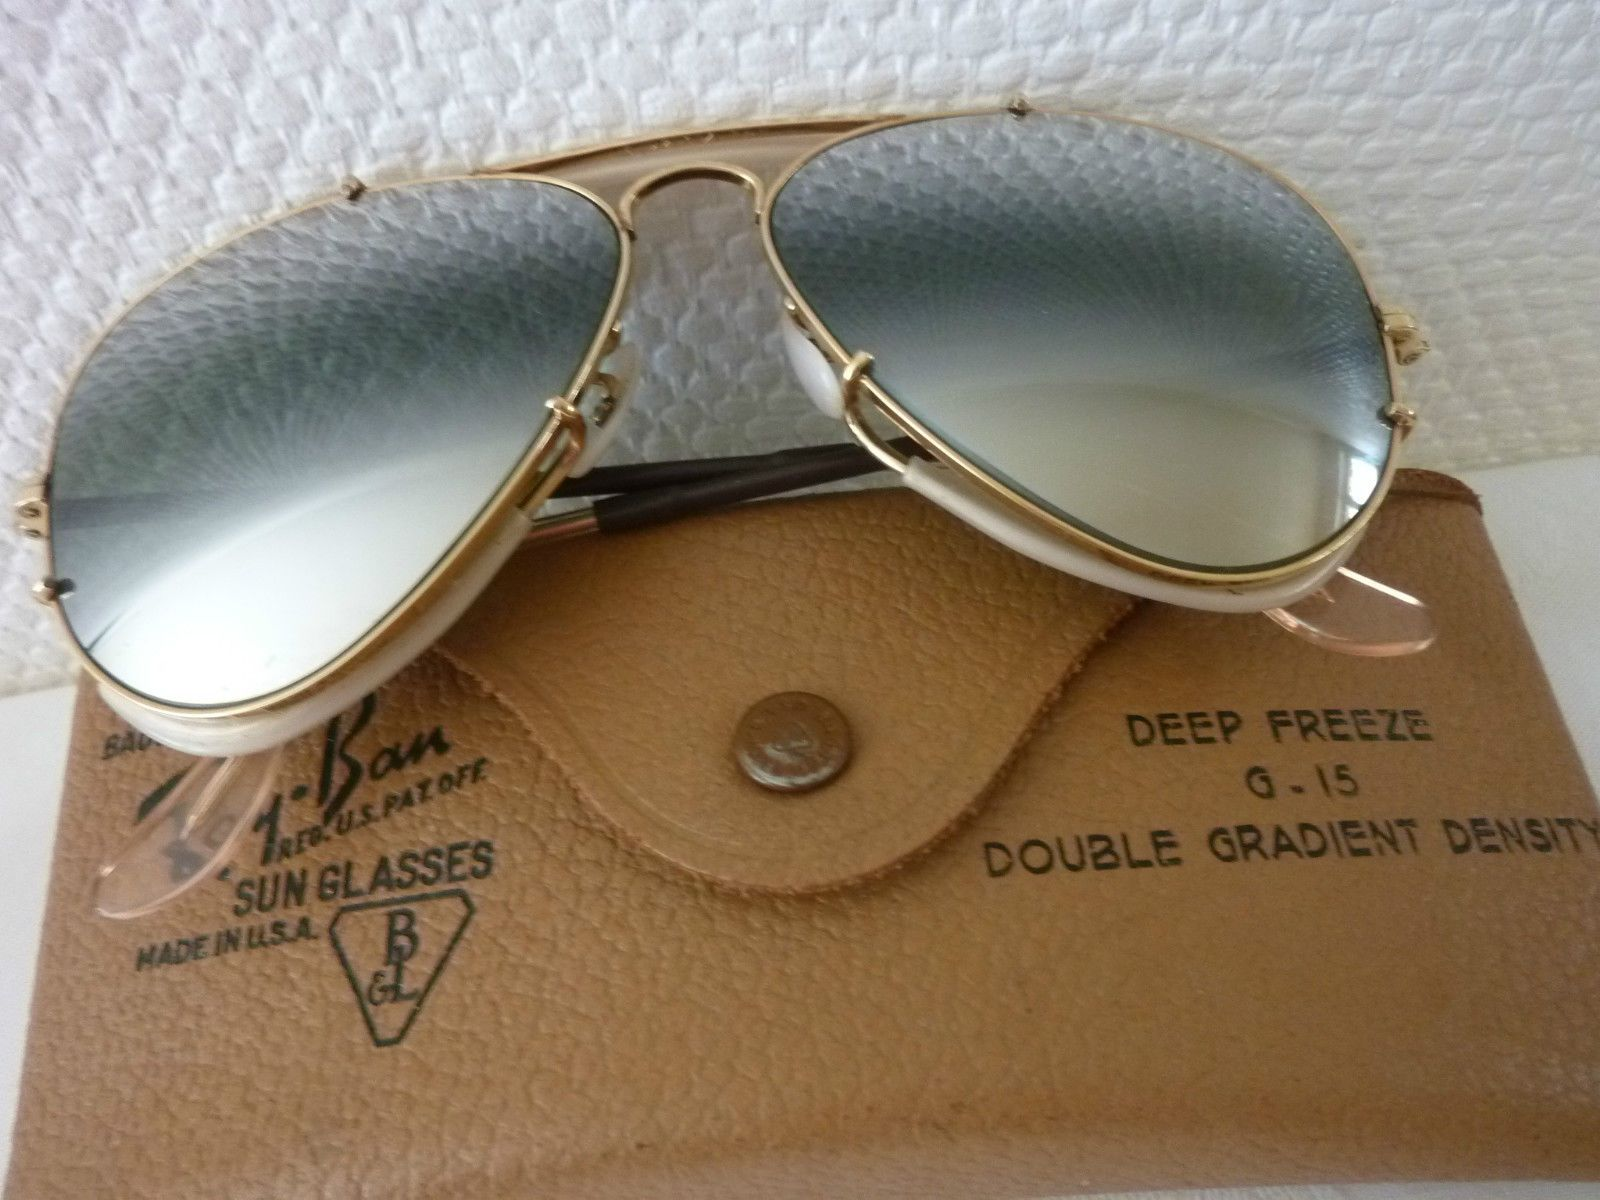 Ray-Ban Sunglasses (Men s Preowned Vintage 1950 Deep Freeze Double Gradient  Density Bausch   Lomb RayBan Sun Glasses) 0510670dc9a1